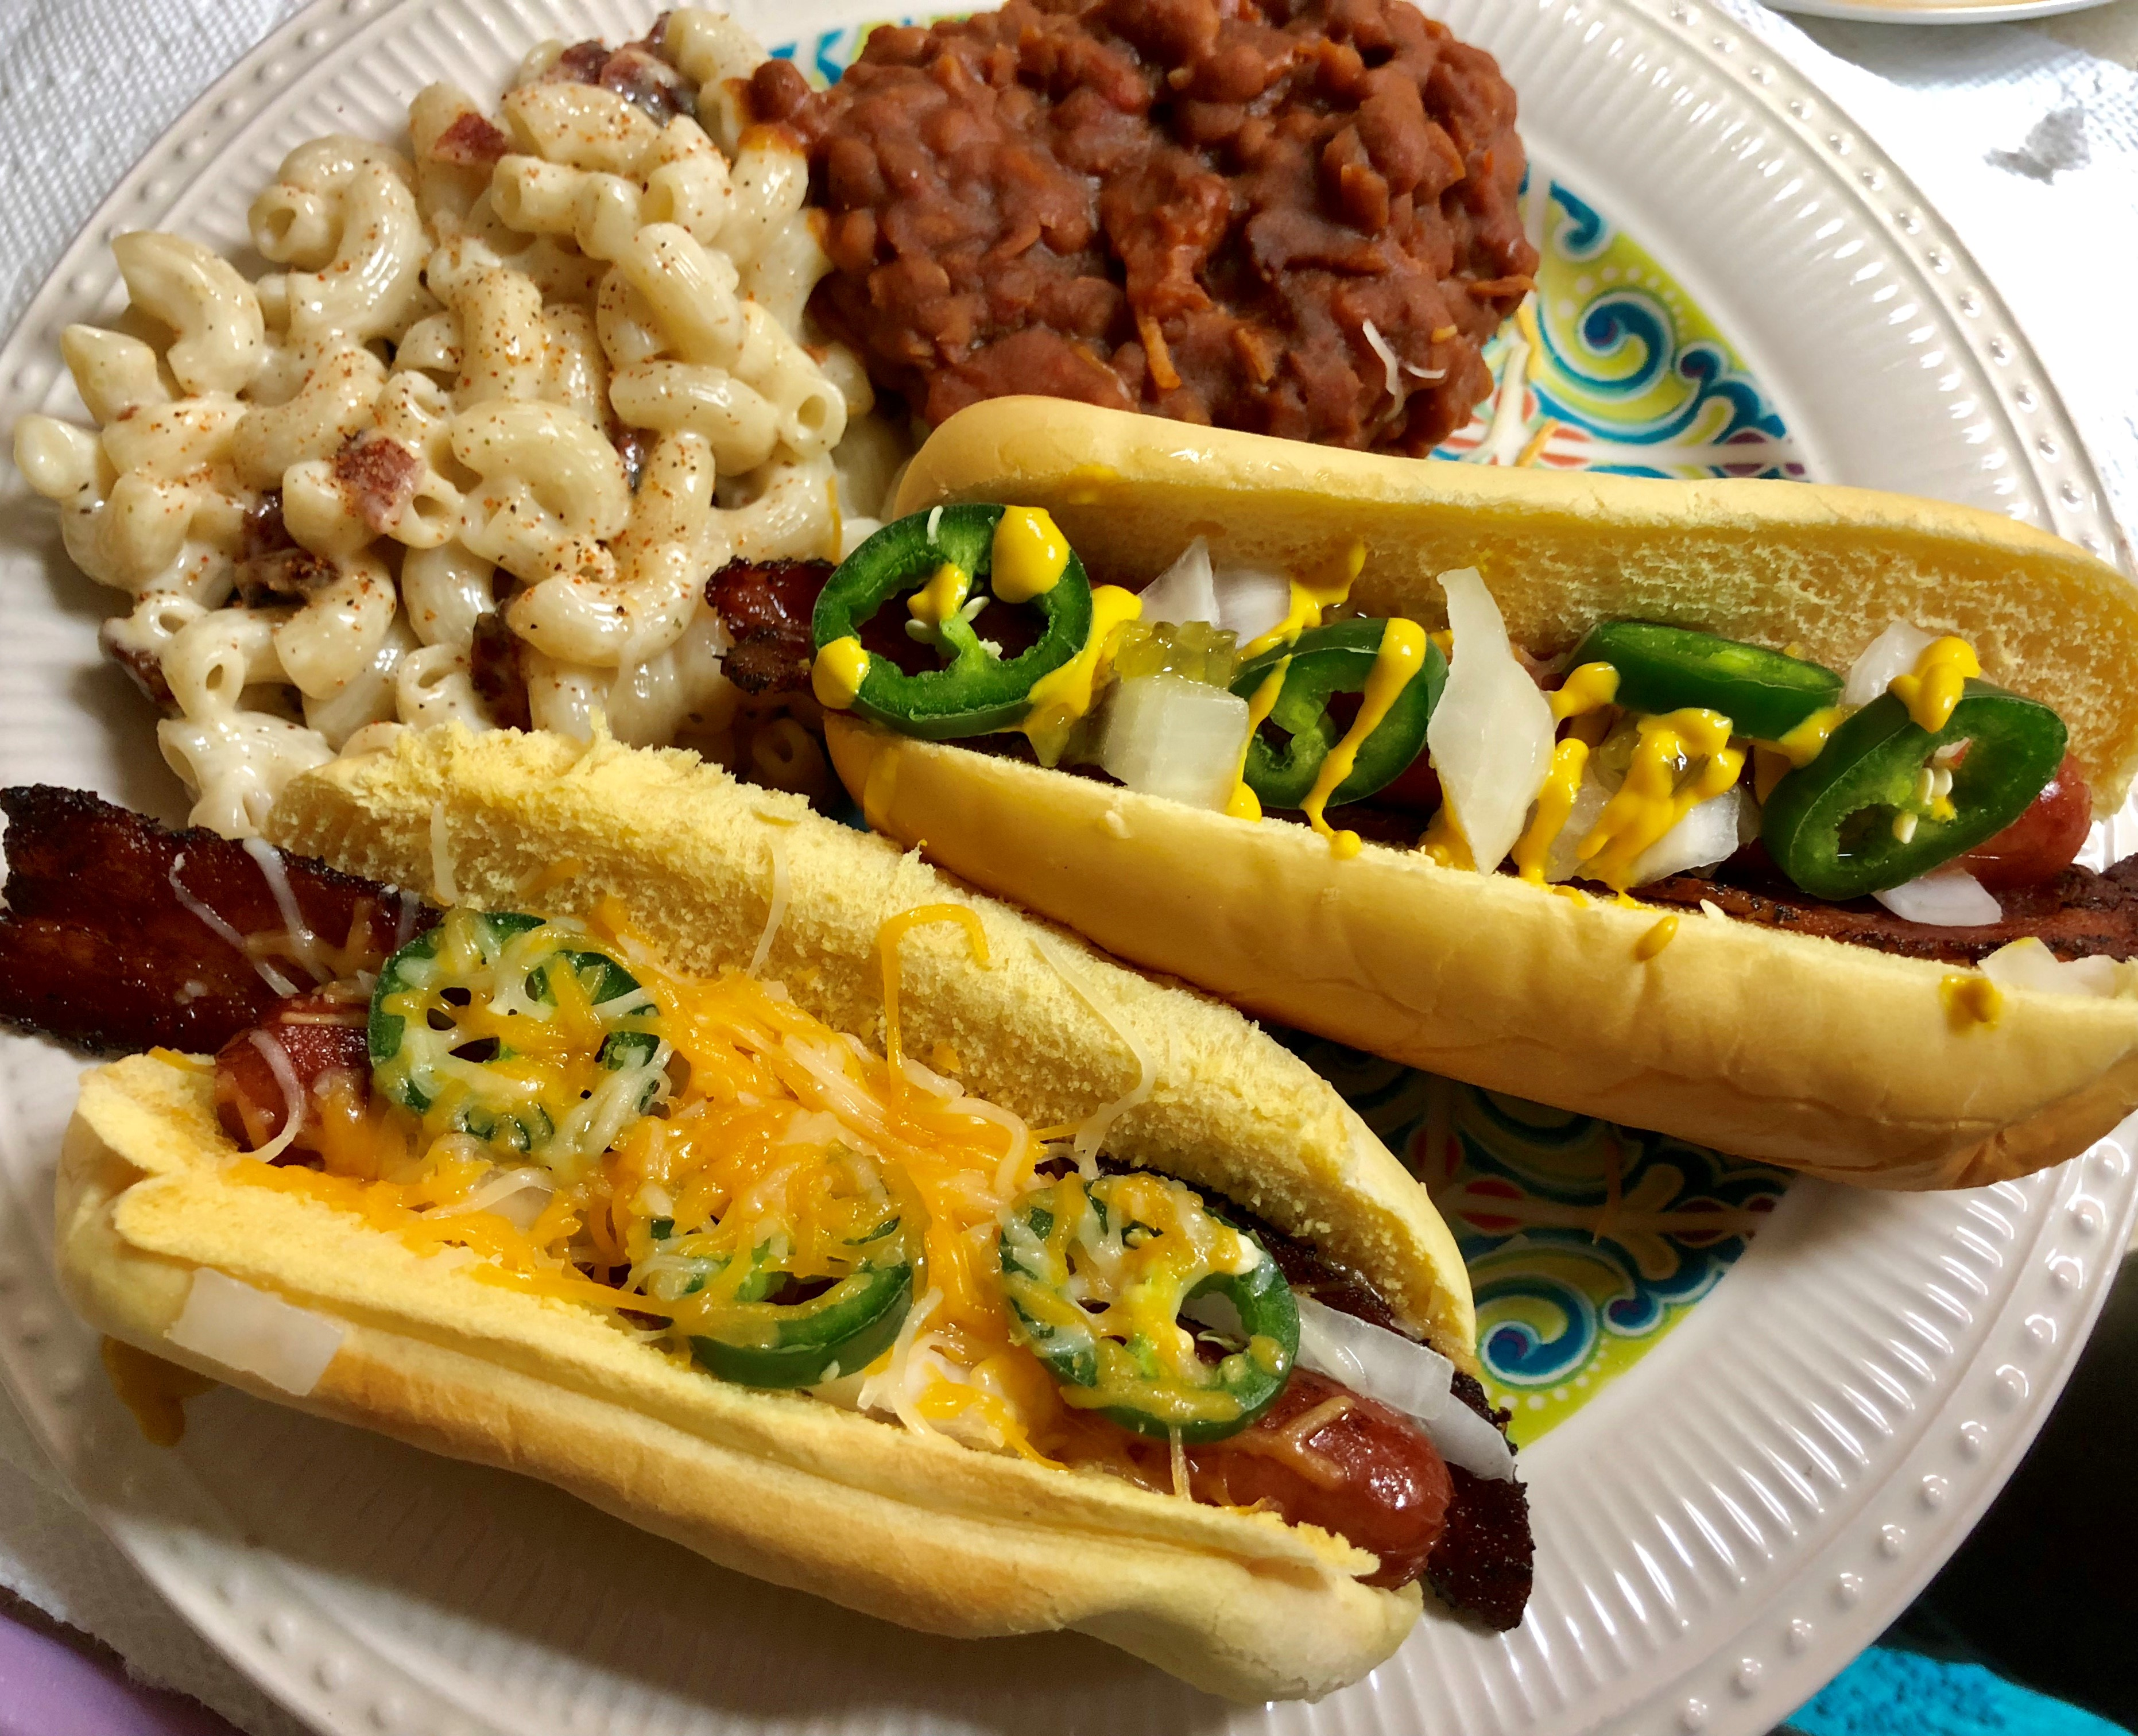 Howling Baked Beans Food Baked Hot Dog Sandwiches Baked Hot Dogs Hot Mac Potatoes Baked Hot Mac nice food Baked Hot Dogs